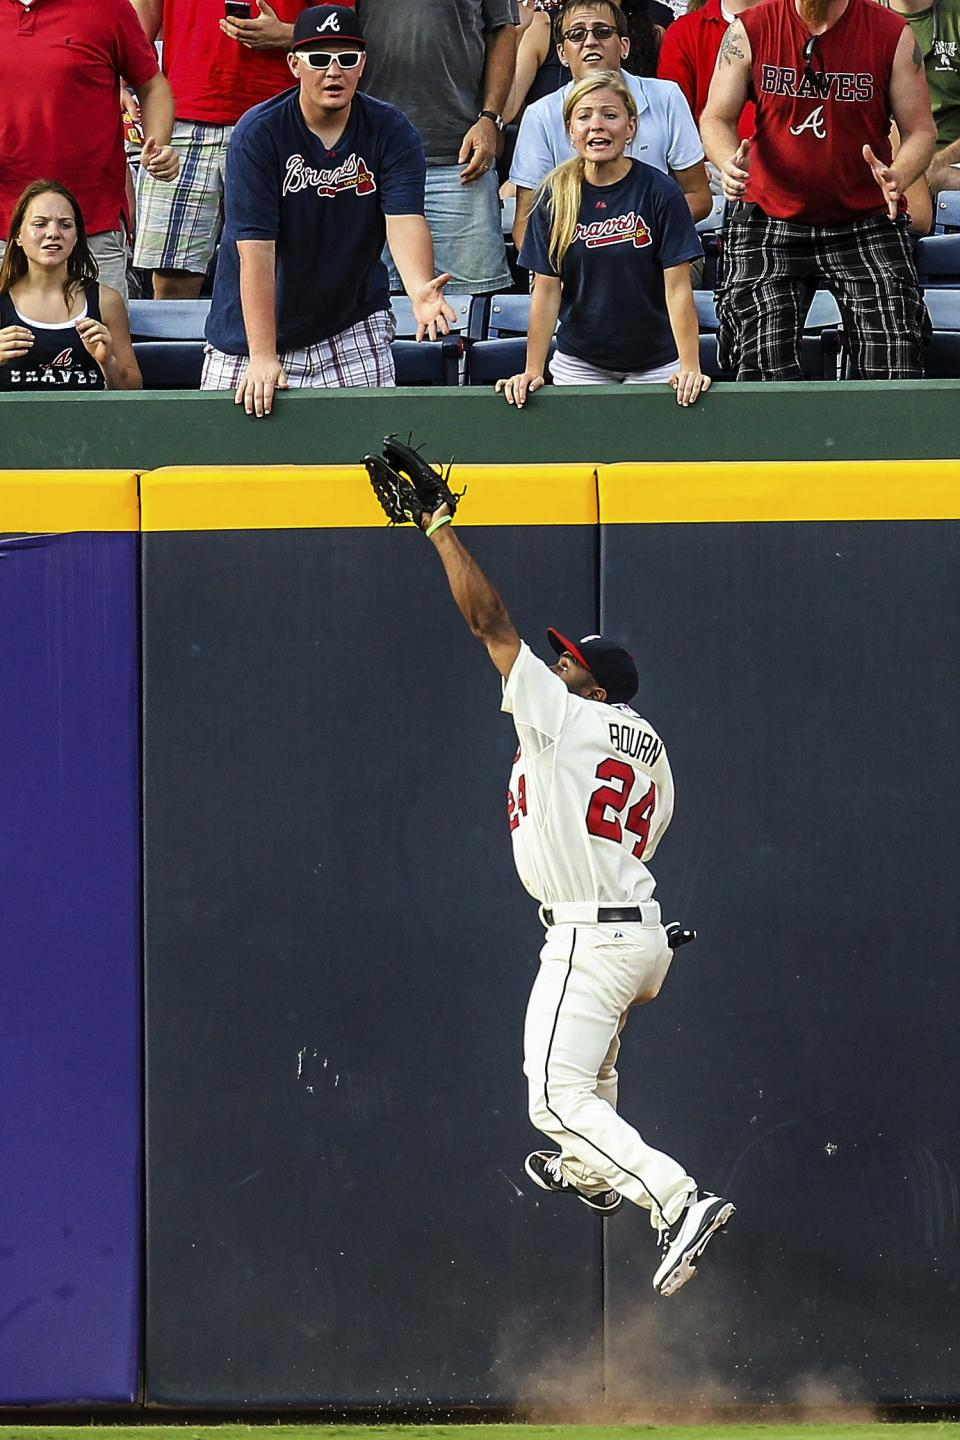 Atlanta Braves center fielder Michael Bourn (24) makes a leaping catch on a fly ball by Philadelphia Phillies' Chase Utley in the sixth inning of a baseball game, Sunday, Sept. 2, 2012, in Atlanta. (AP Photo/Daniel Shirey)